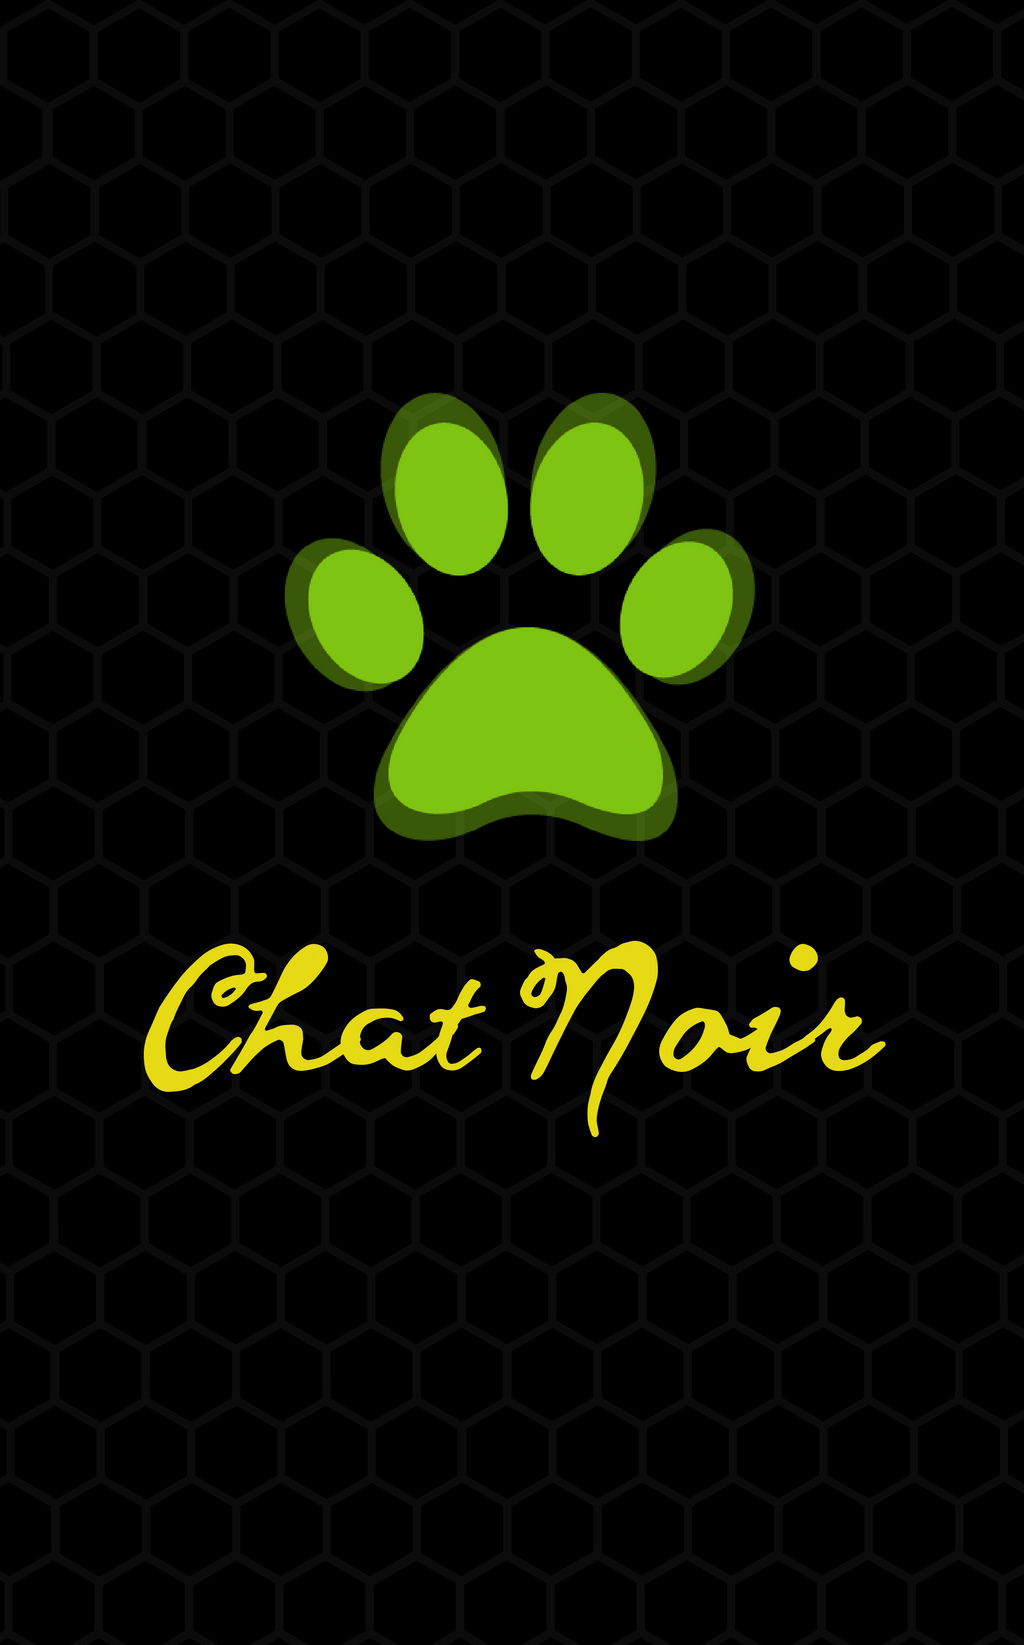 Chat Noir Ml Mobile Phone Wallpaper By Cheezepop38 On Deviantart